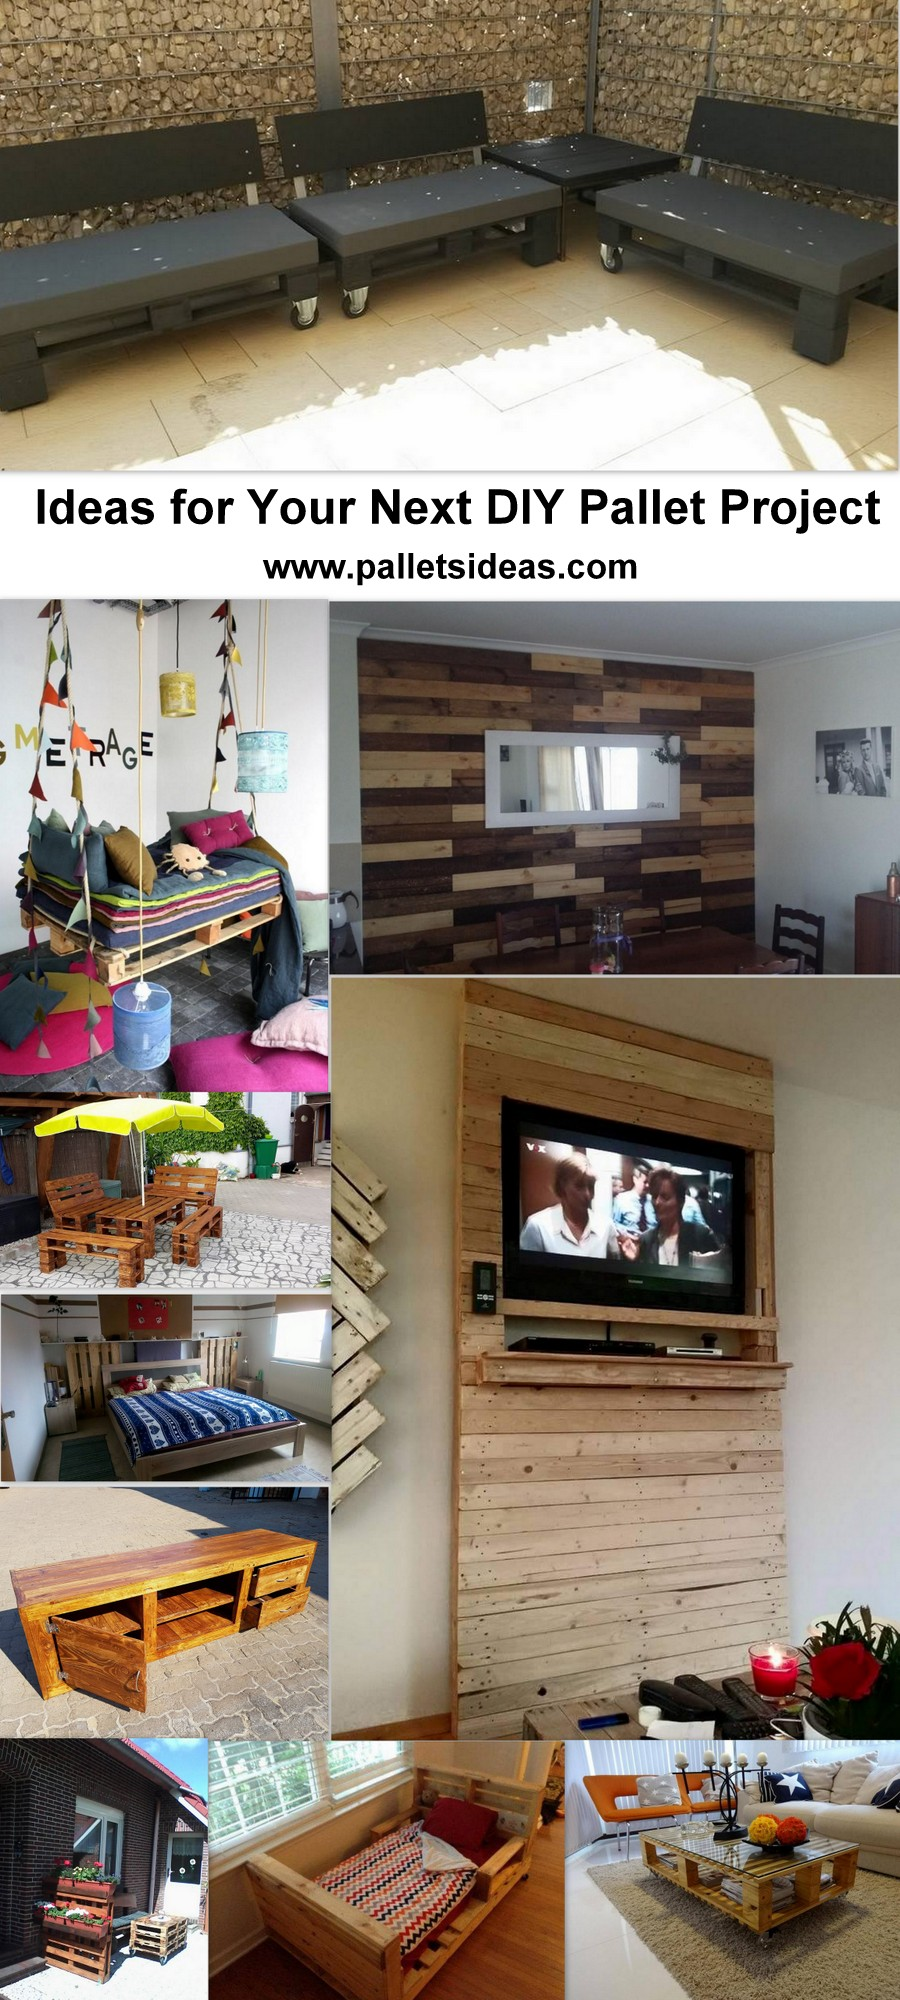 Ideas for Your Next DIY Pallet Project